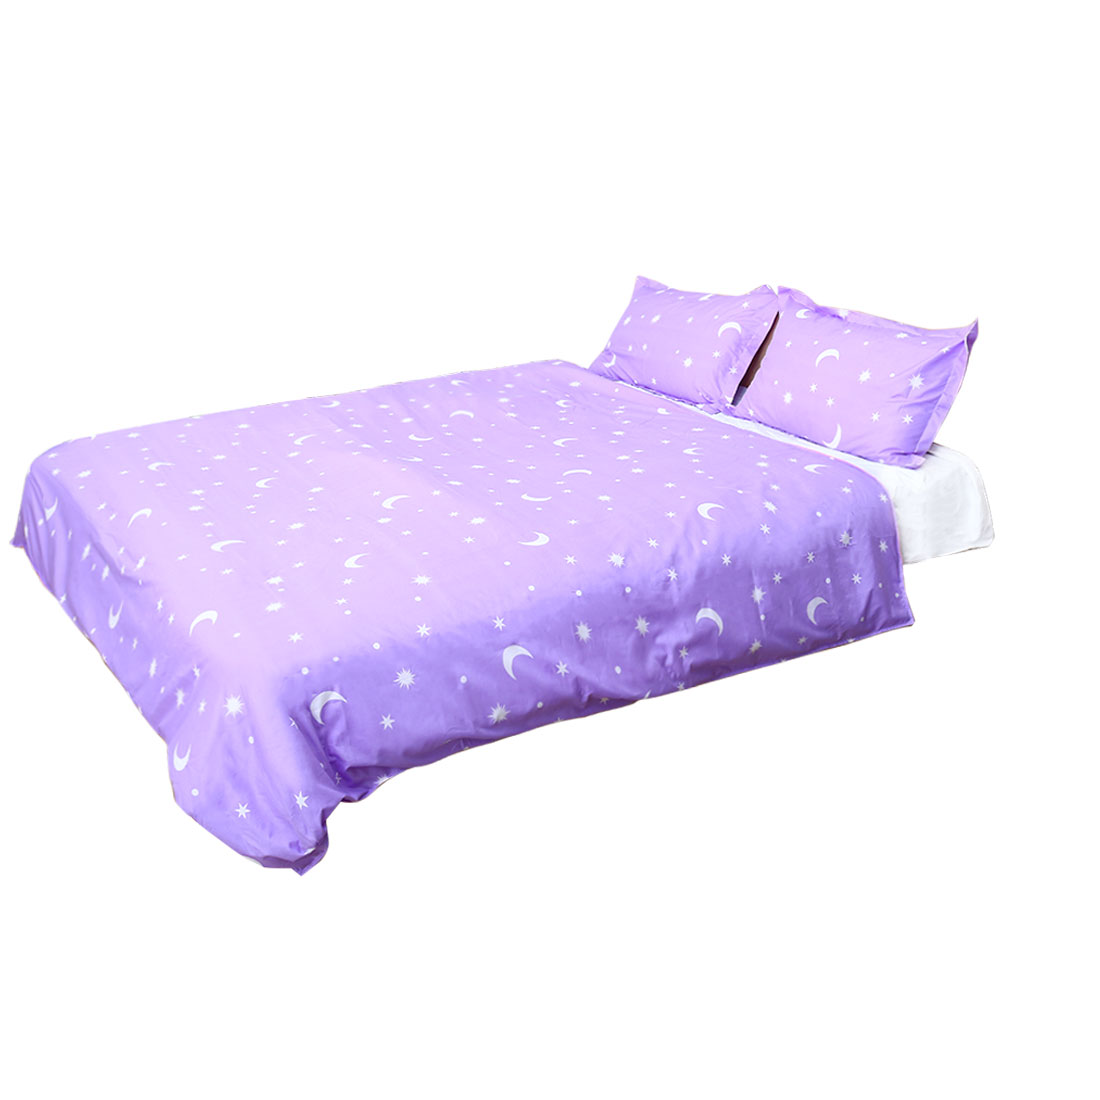 All Size Duvets with Pillow Case Quilt Cover Bedding Set Single Double King